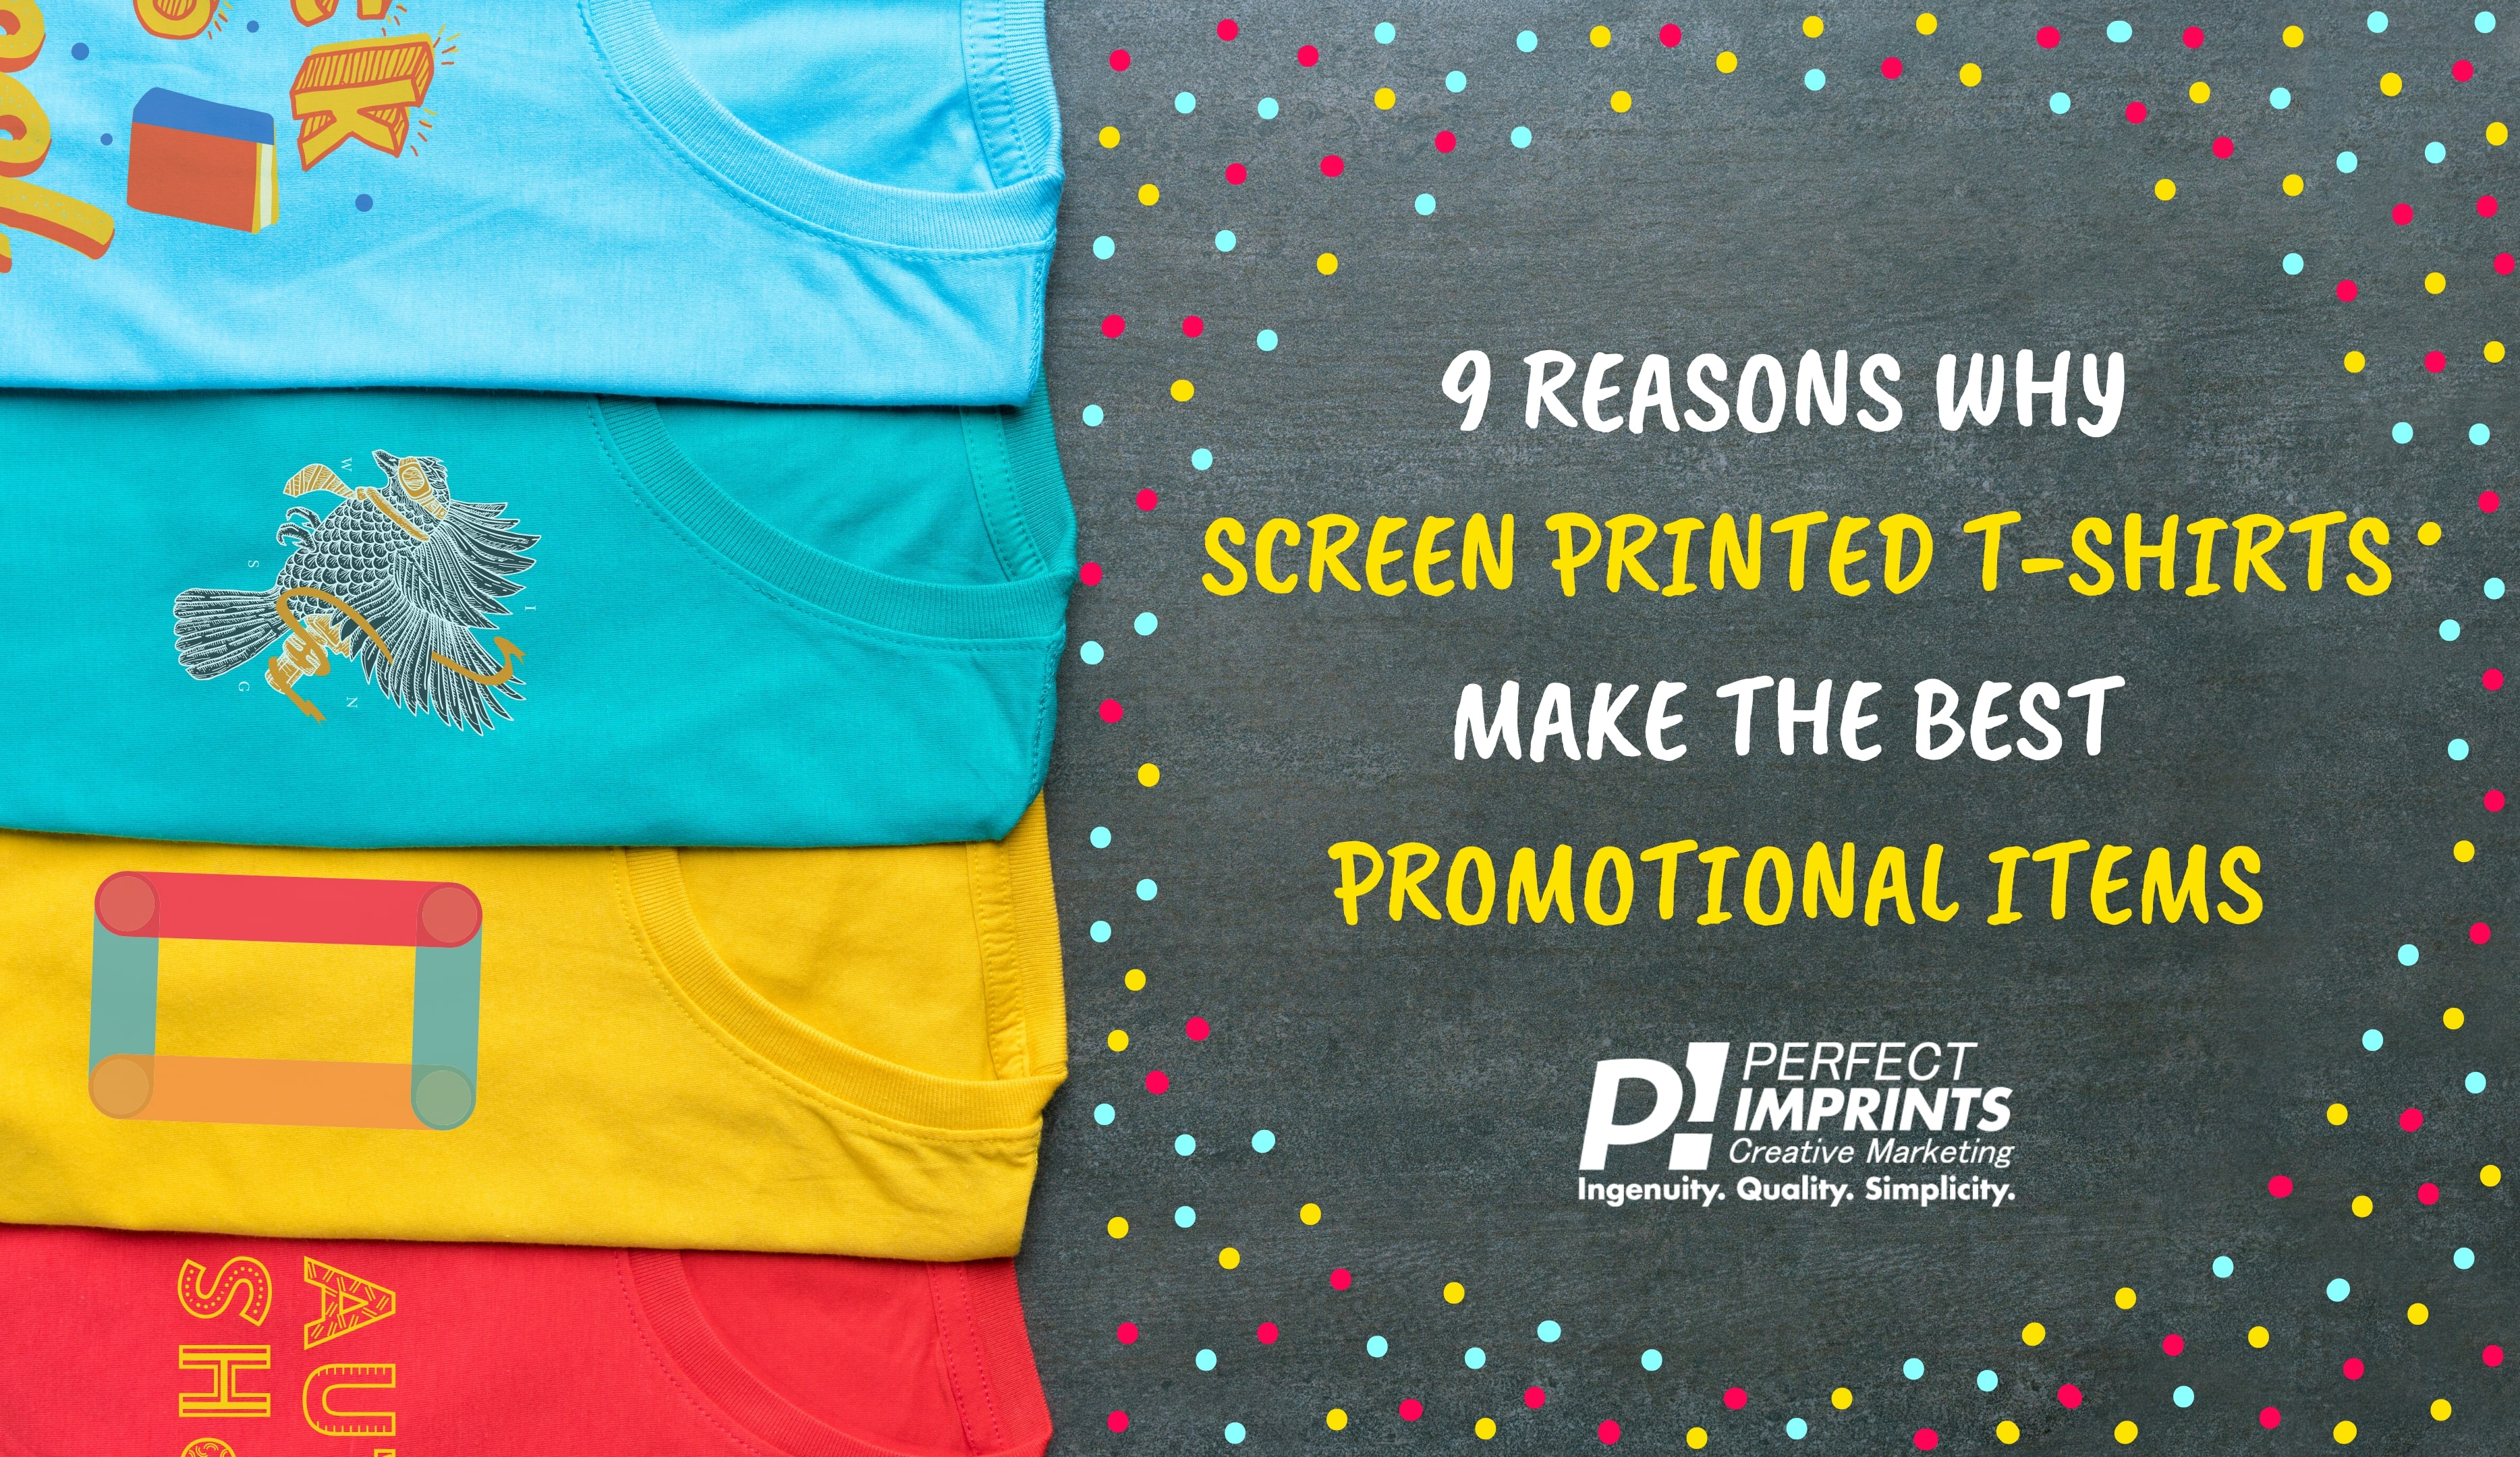 9 Reasons Why Screen Printed T-Shirts Make the Best Promotional Items